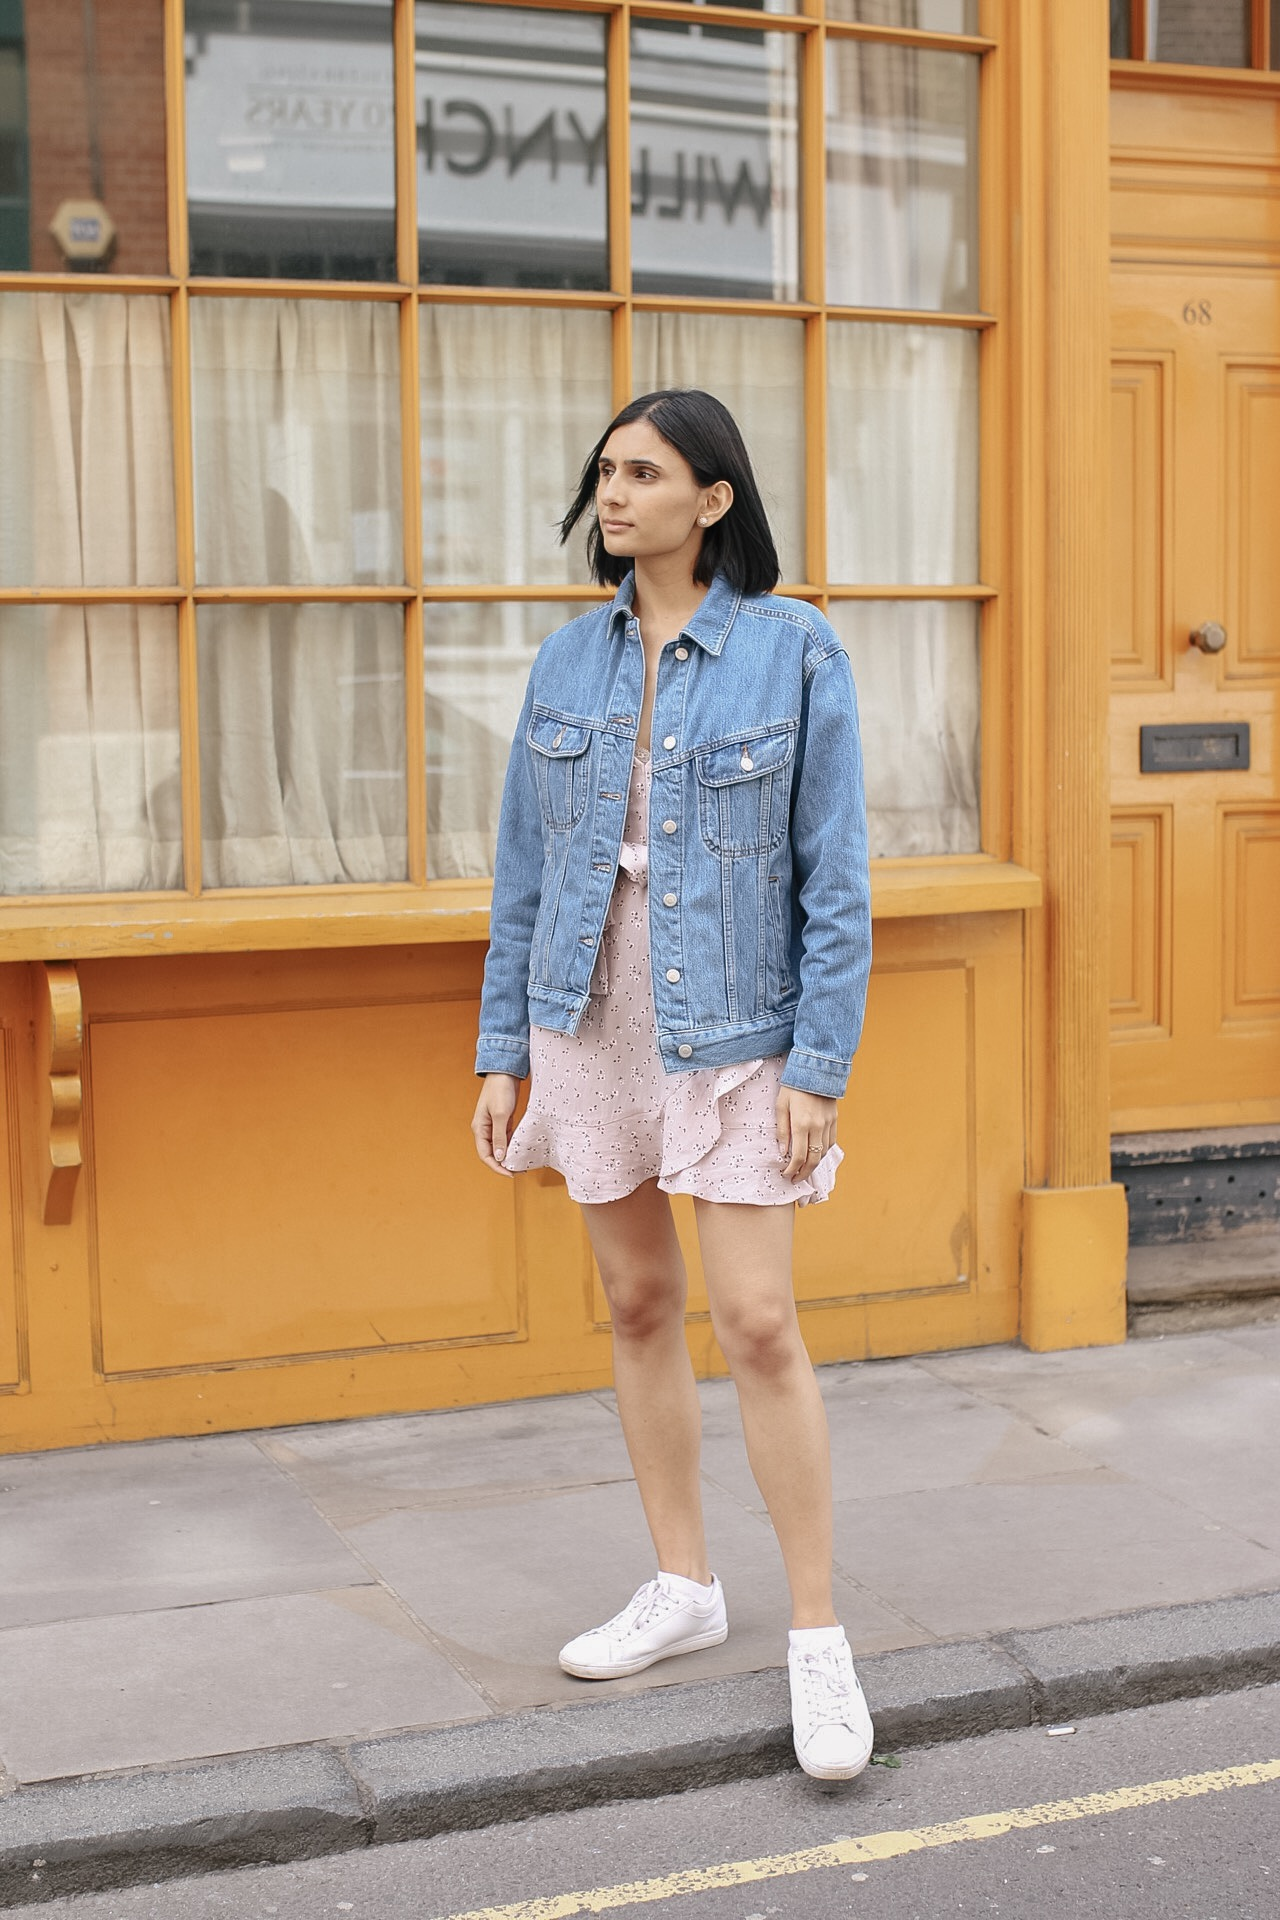 Topshop Denim Jacket